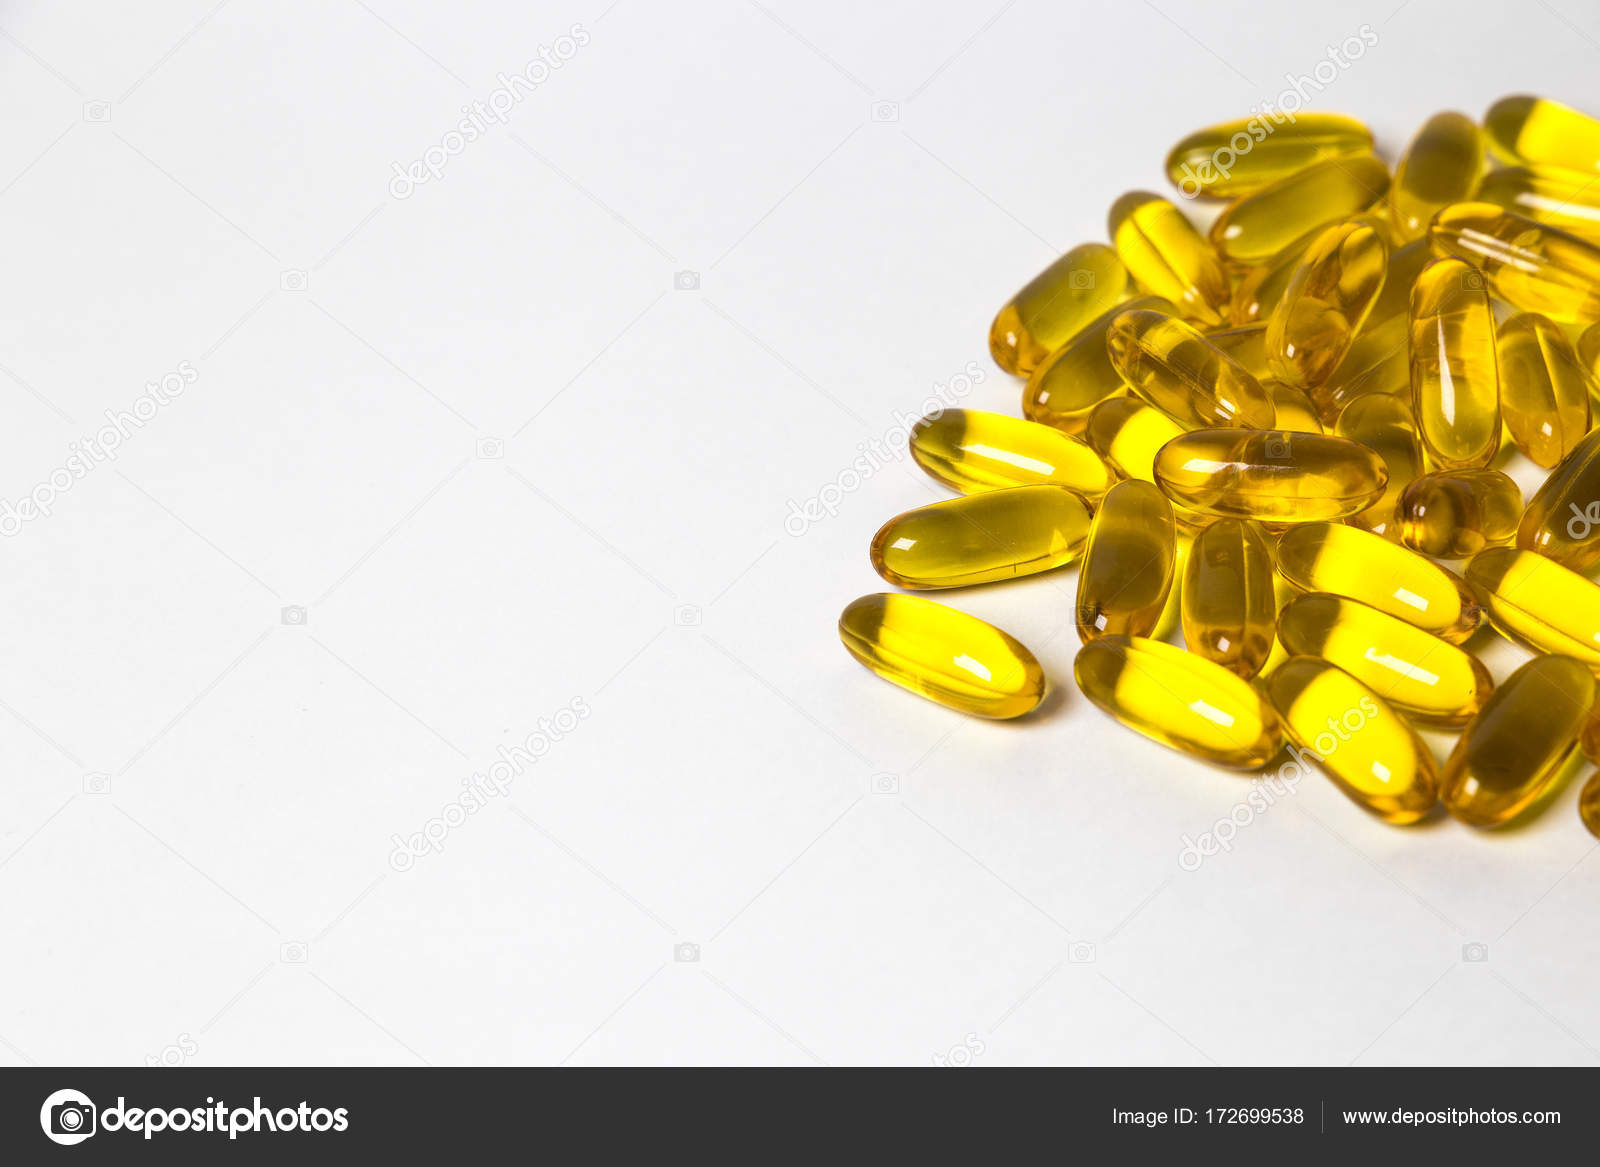 Omega 3 6 9 In Capsules Isolated On The White Background